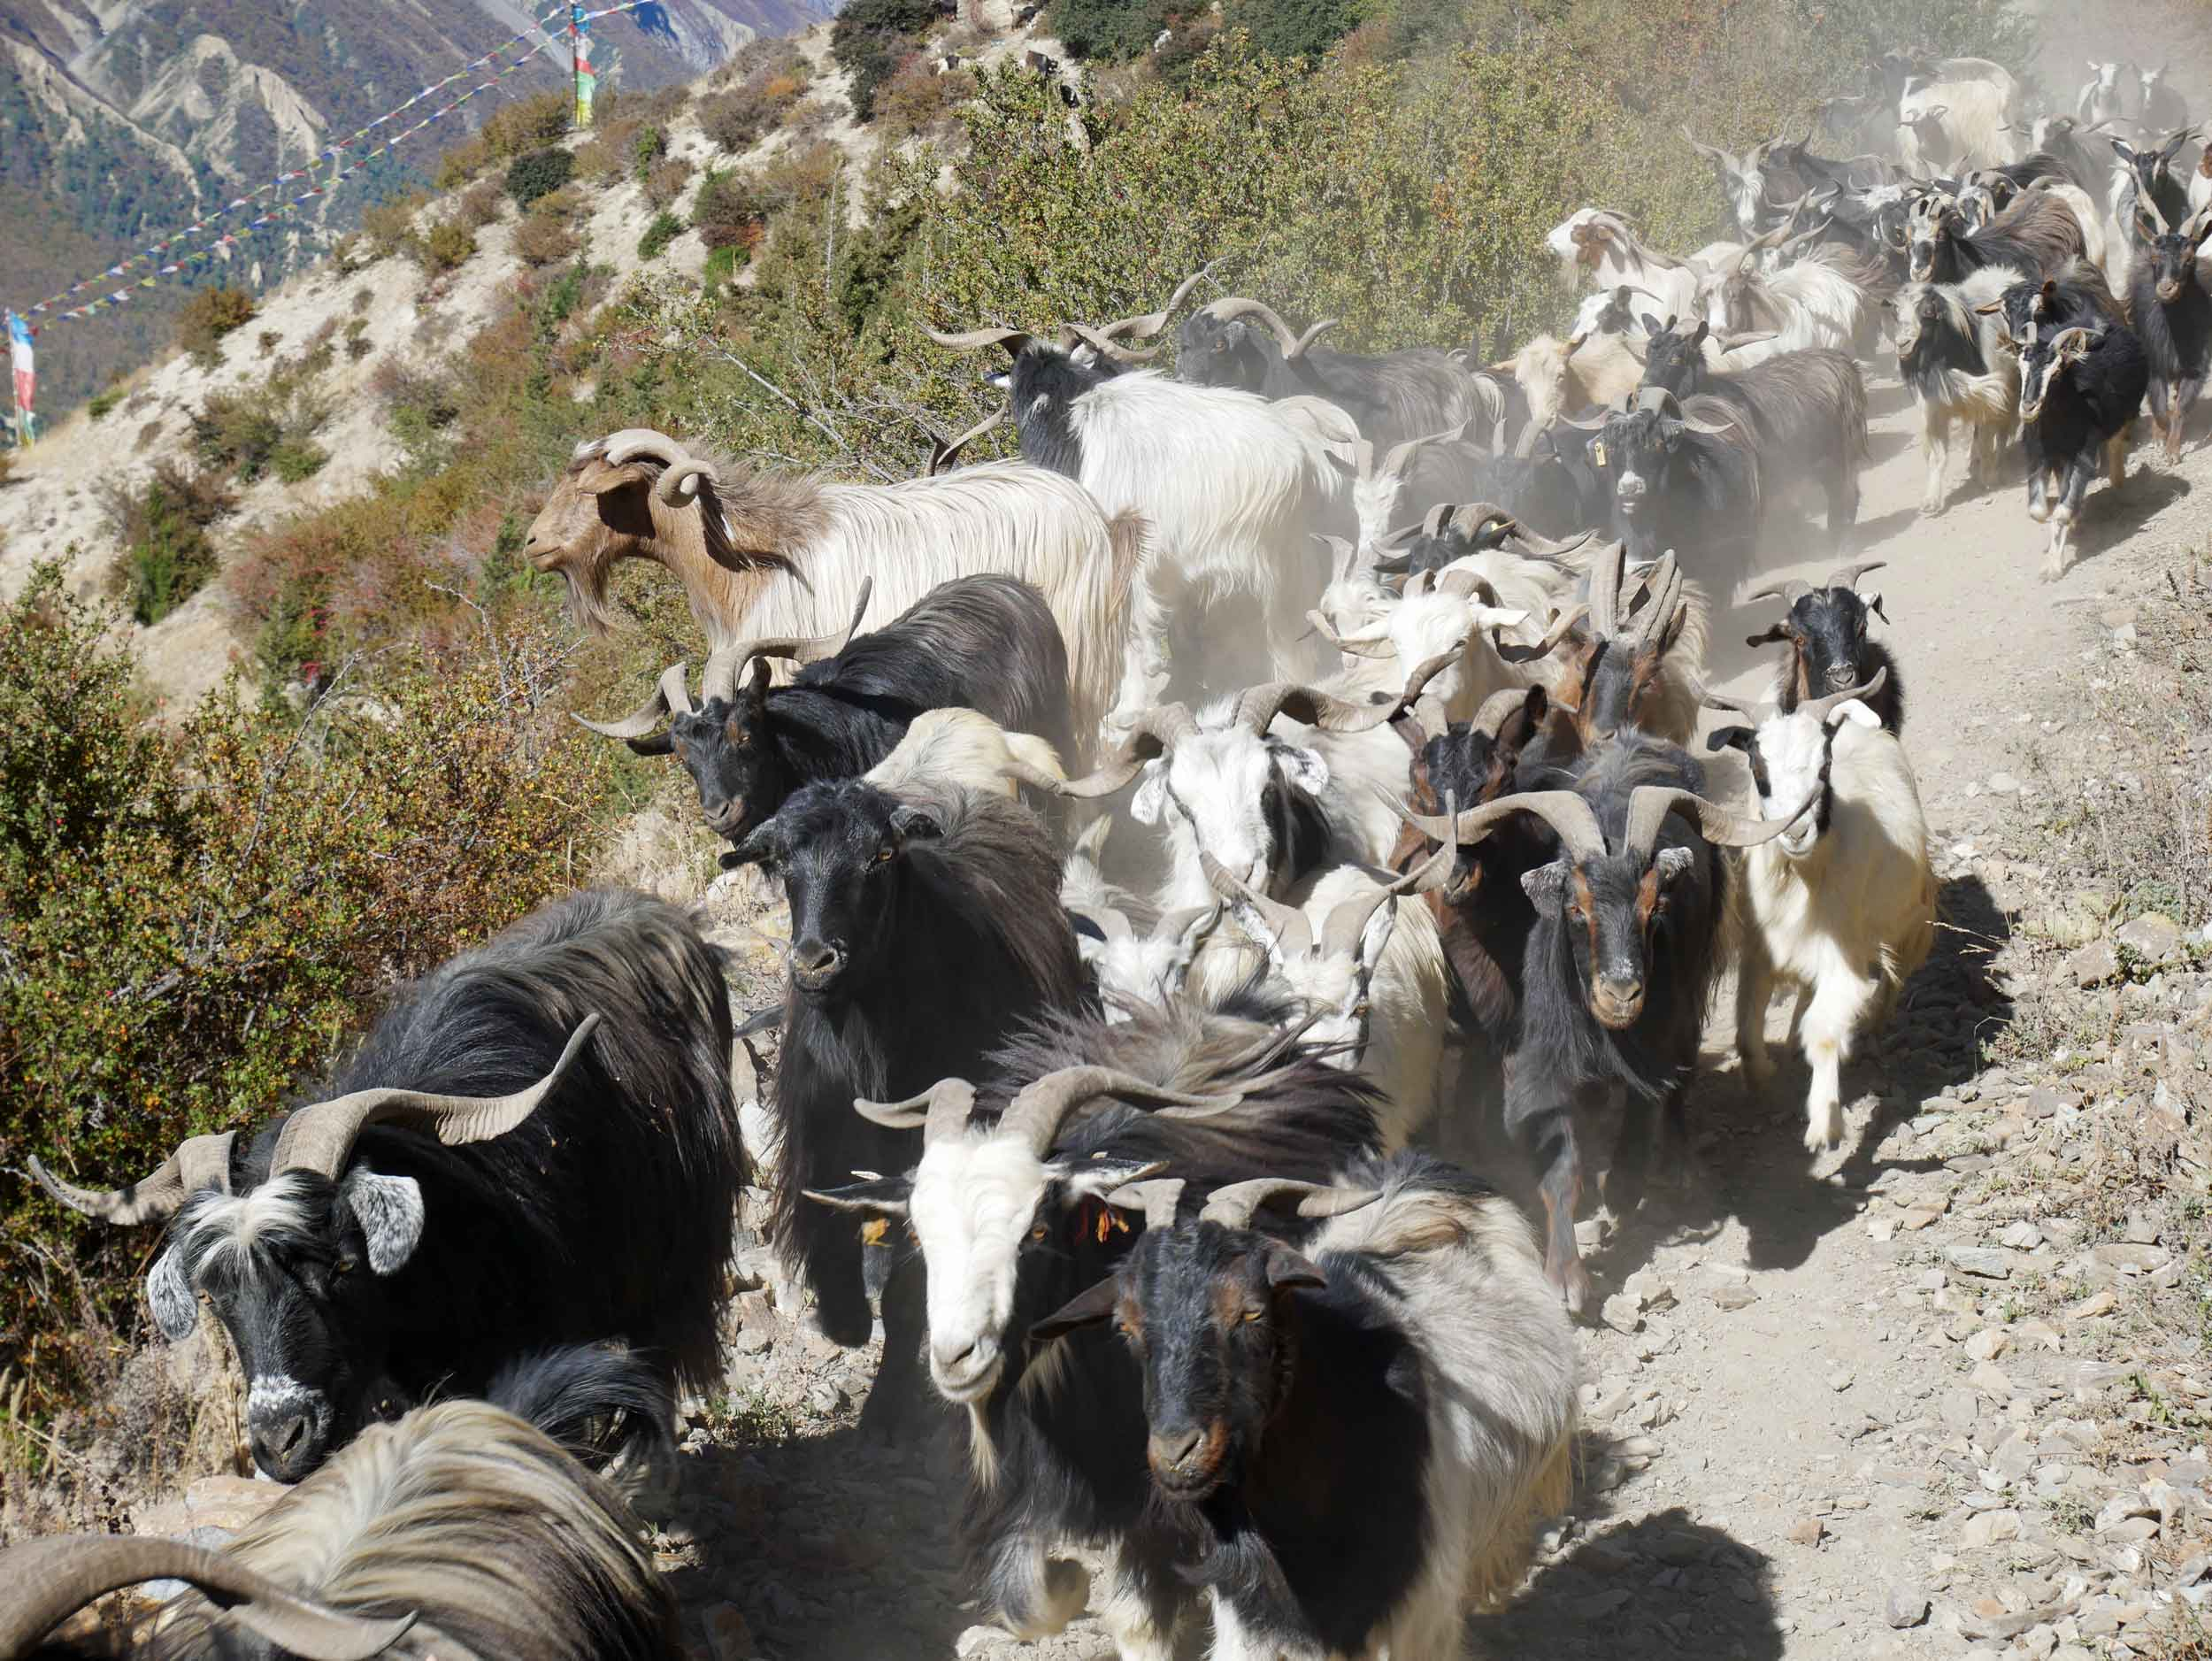 Rush hour! Our departure from Manang brought us even closer to village life as we officially depart territory covered by 'the Road' (Oct 7).